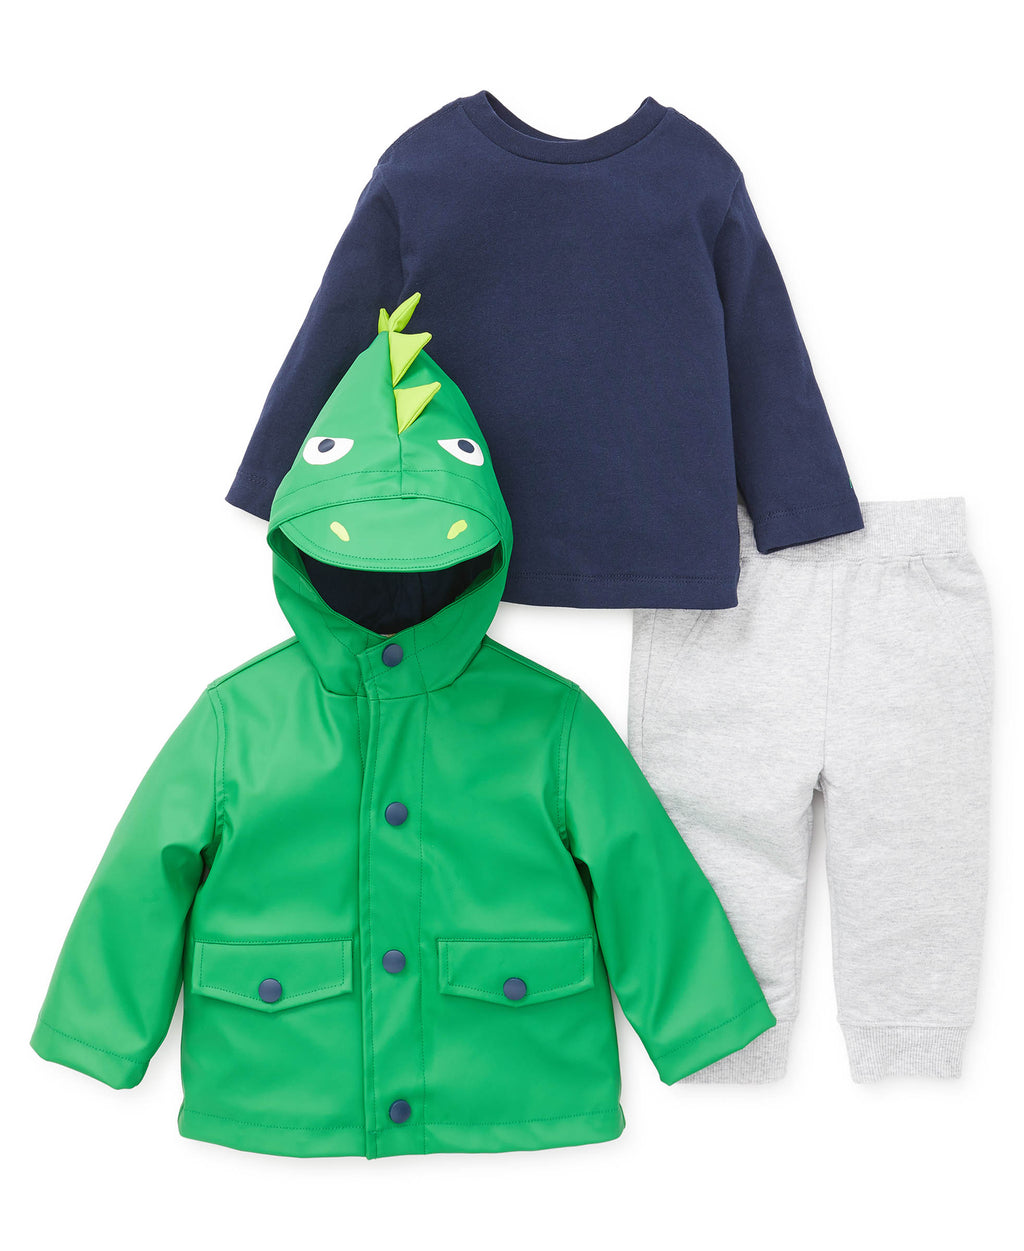 Green Toddler Jacket Set